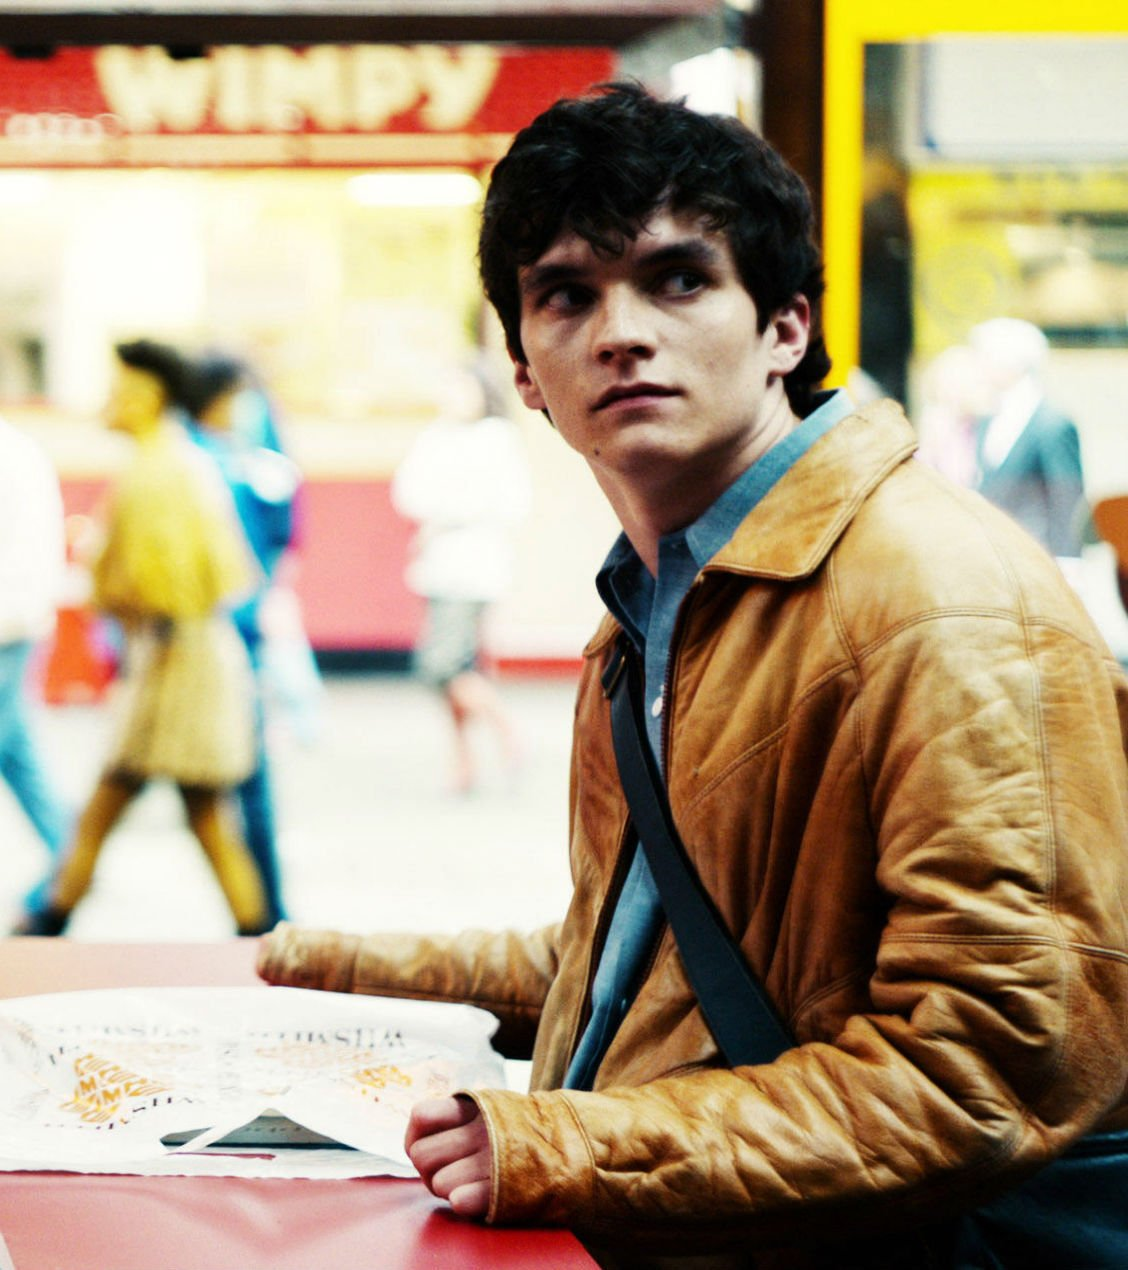 Bandersnatch 25 Things You Didn't Know About Black Mirror: Bandersnatch